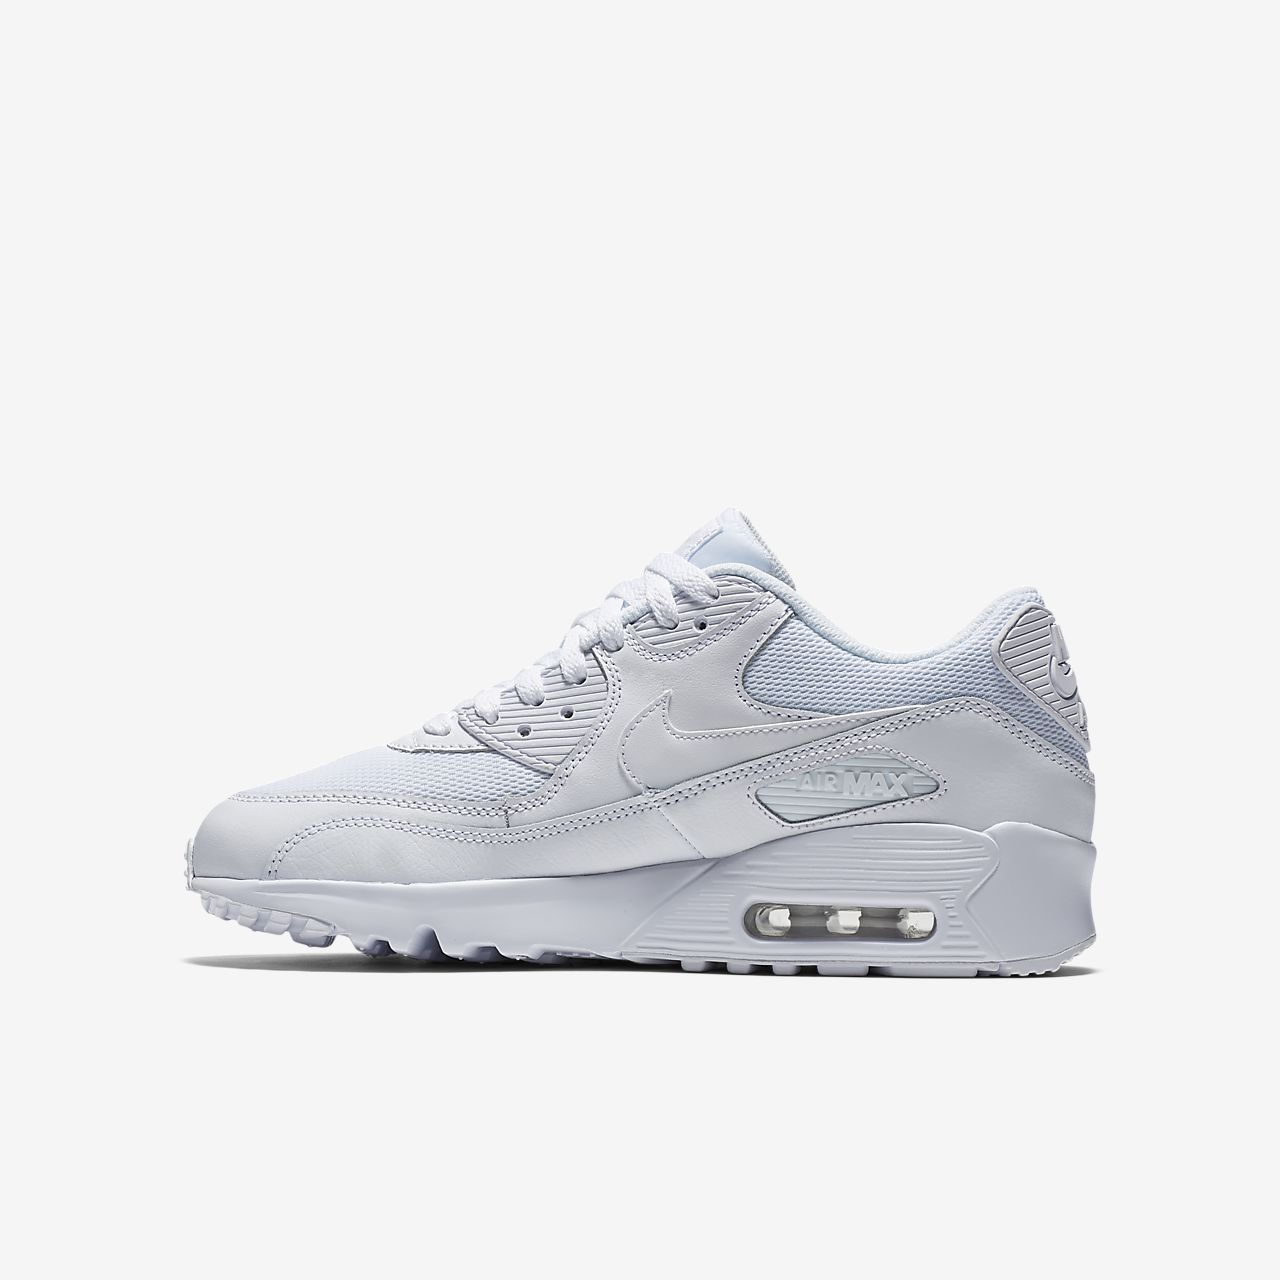 Nike Air Max 90 Essential | Nike sportswear in 2019 | Air